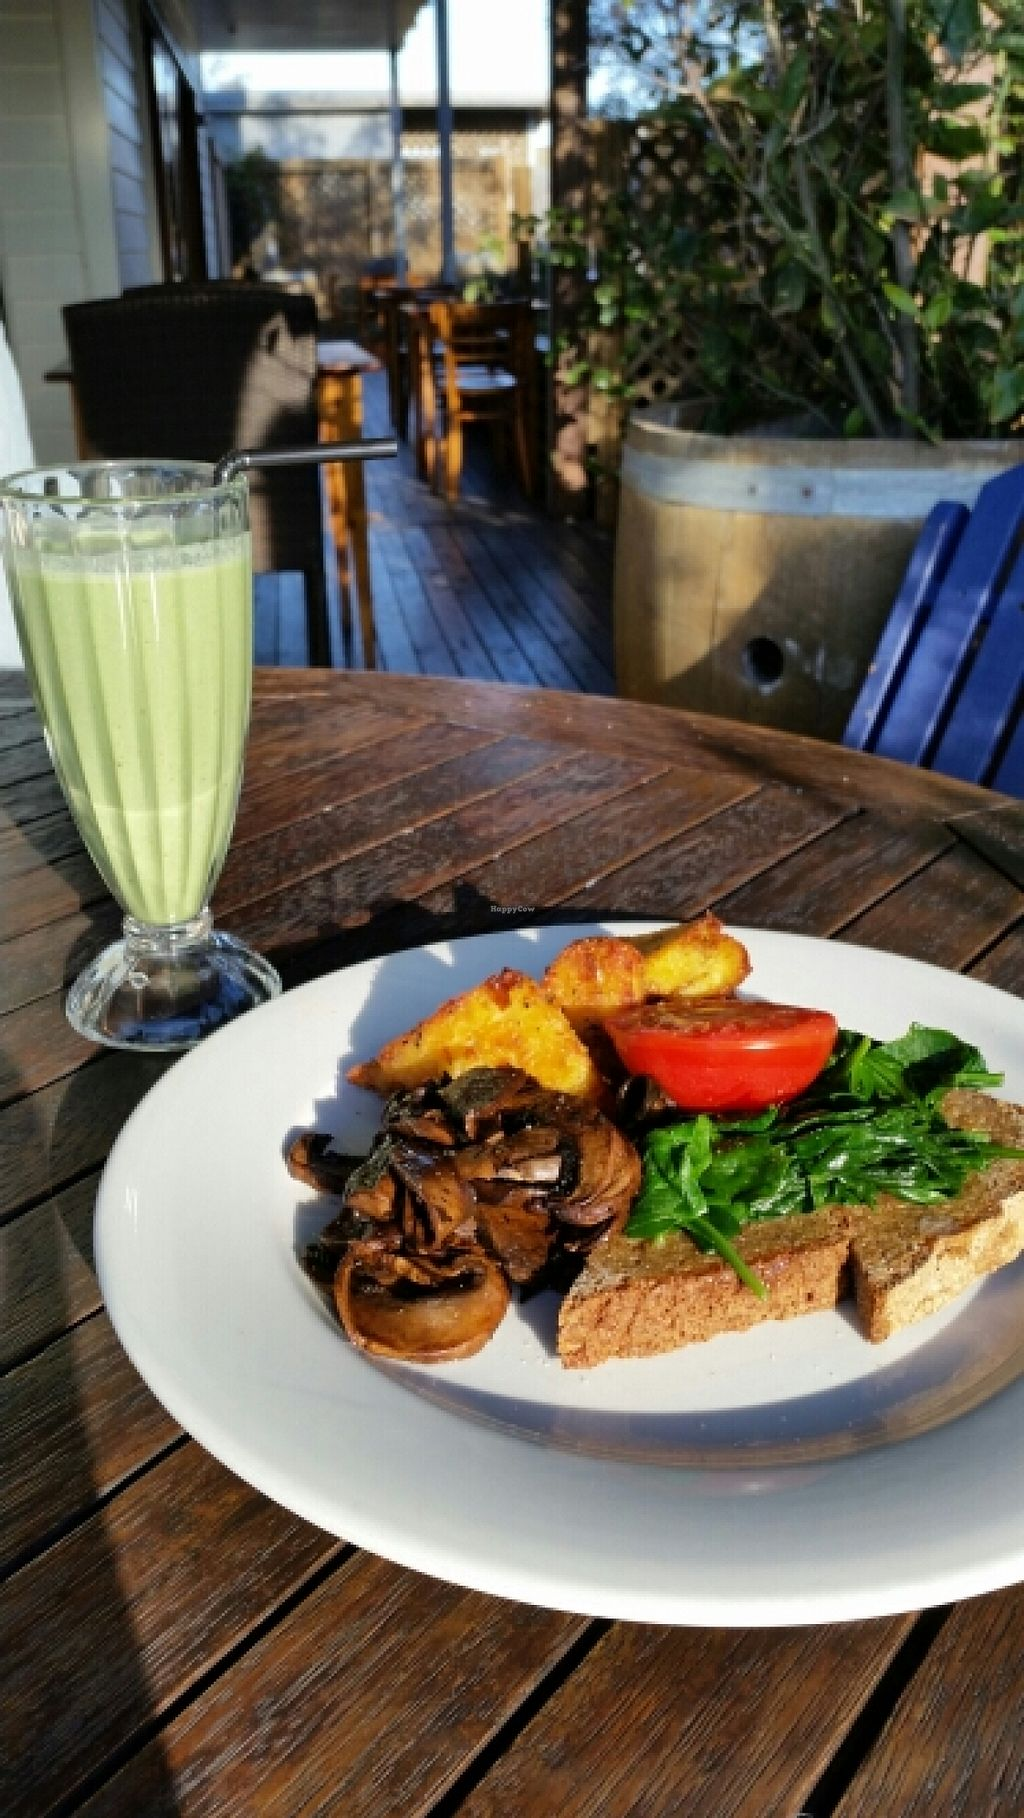 """Photo of Hislop's Cafe  by <a href=""""/members/profile/AndyTheVWDude"""">AndyTheVWDude</a> <br/>Vegan cooked breakfast & Kale smoothie <br/> April 19, 2016  - <a href='/contact/abuse/image/6890/145373'>Report</a>"""